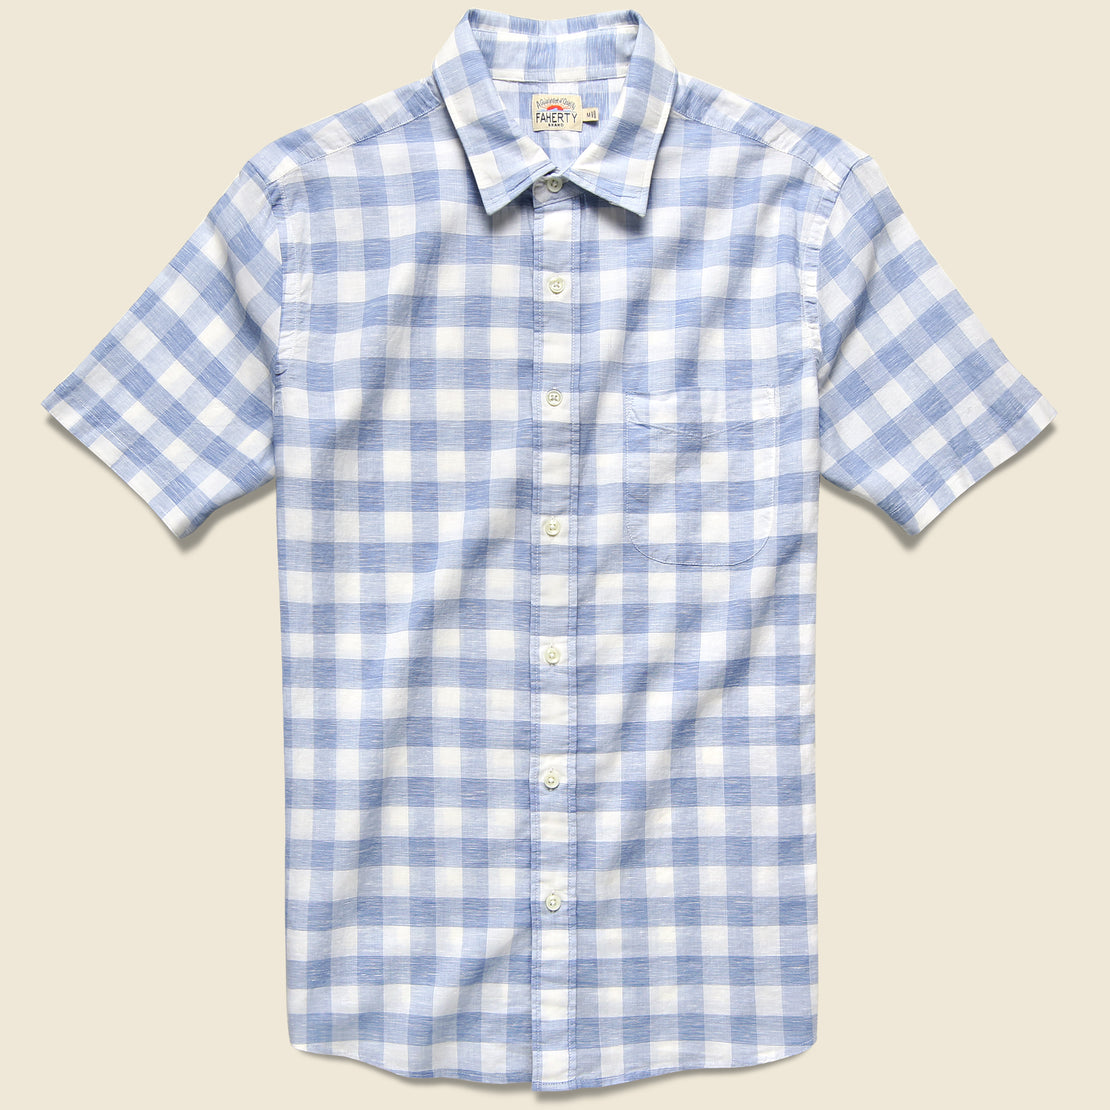 Faherty Cloud Blend Shirt - Blue Riptide